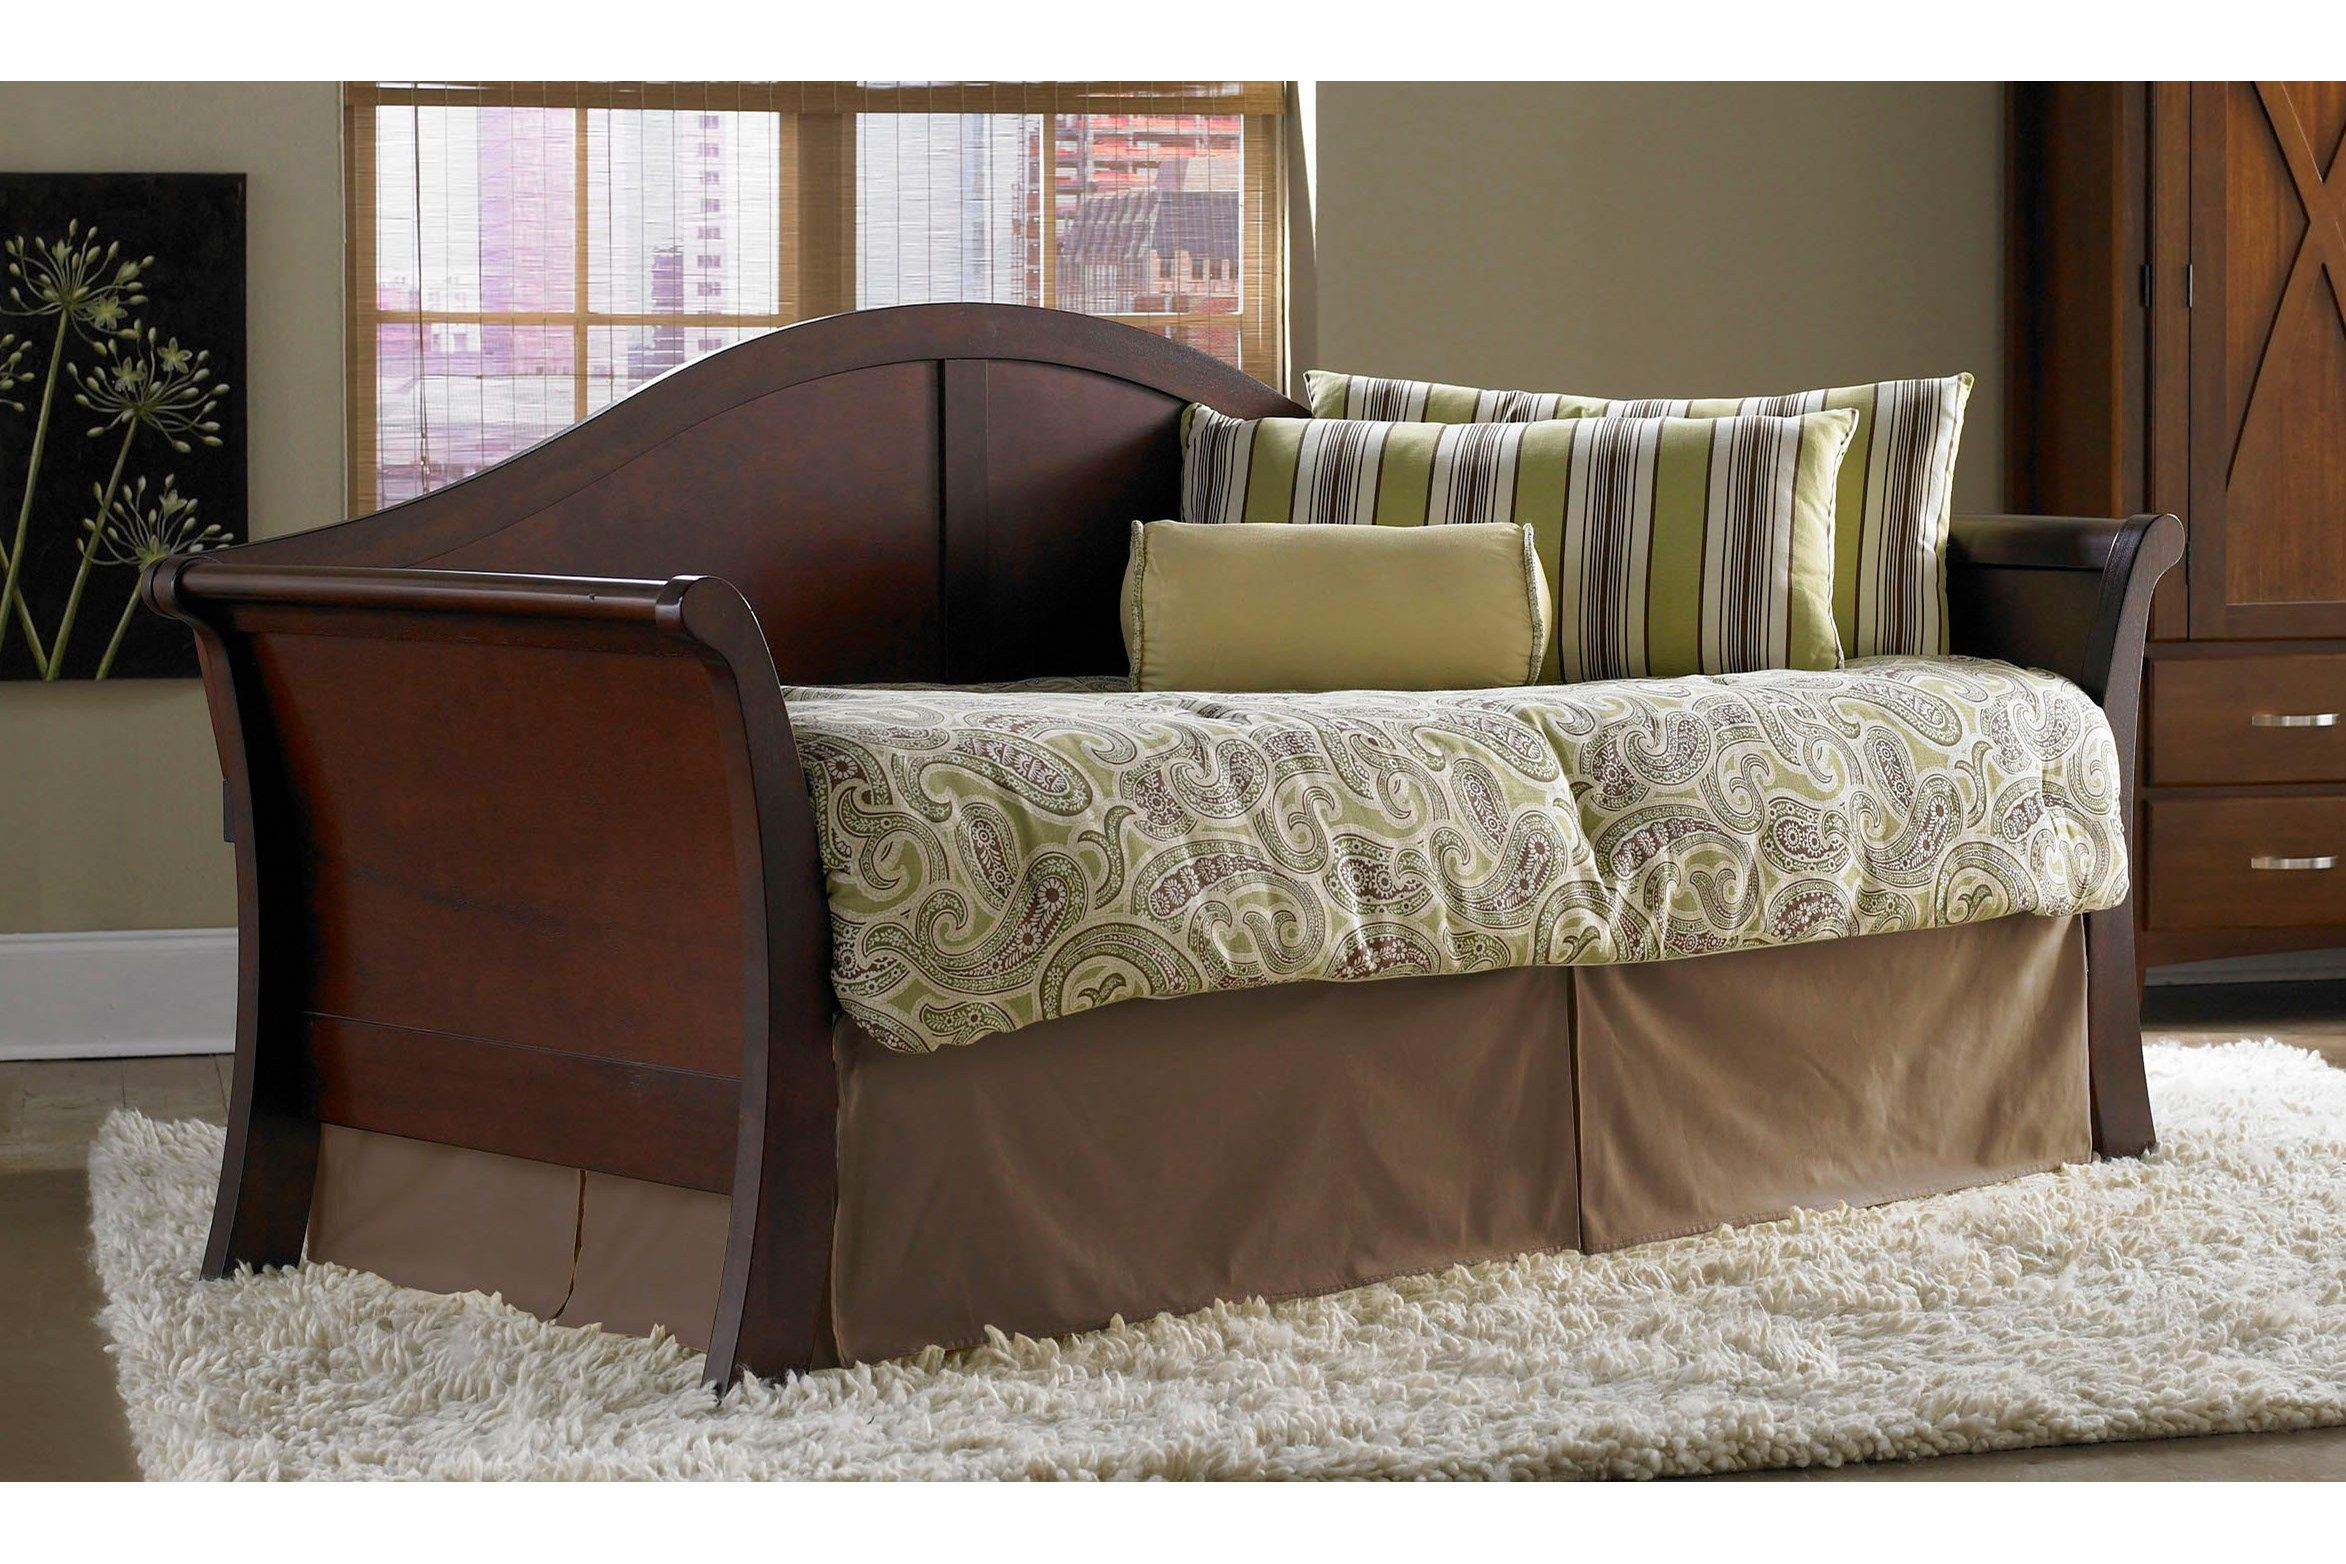 bedroom elegant wooden daybed with pop up trundle sears on double duty bedroom office. Black Bedroom Furniture Sets. Home Design Ideas